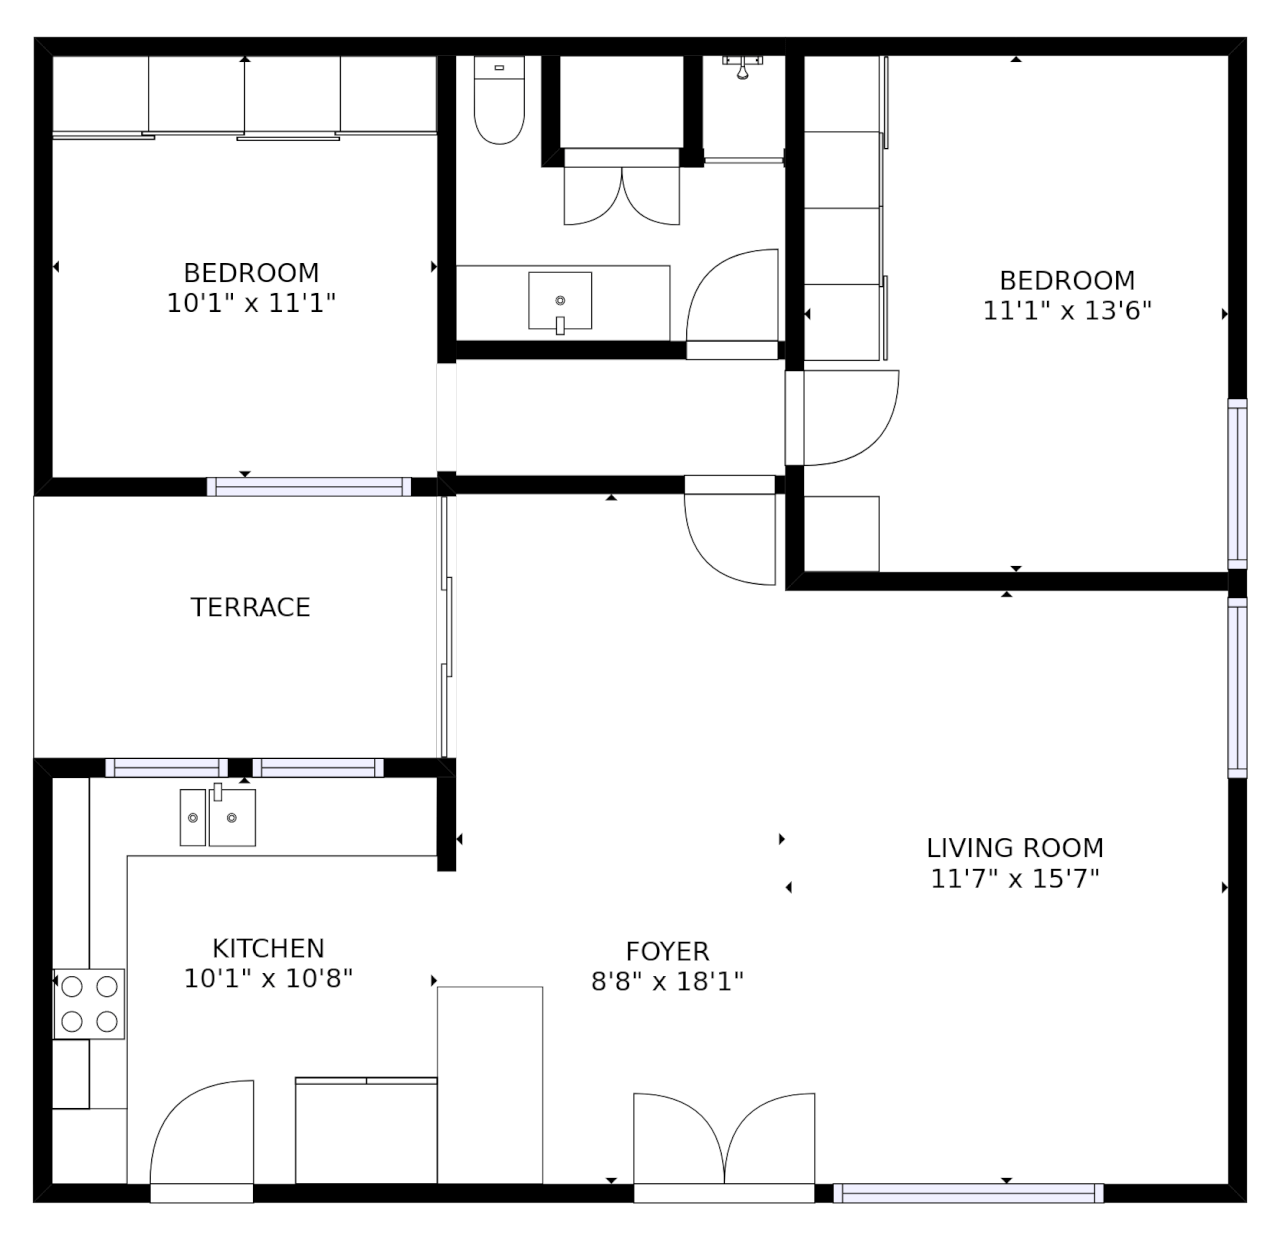 floor plans for real estate photography